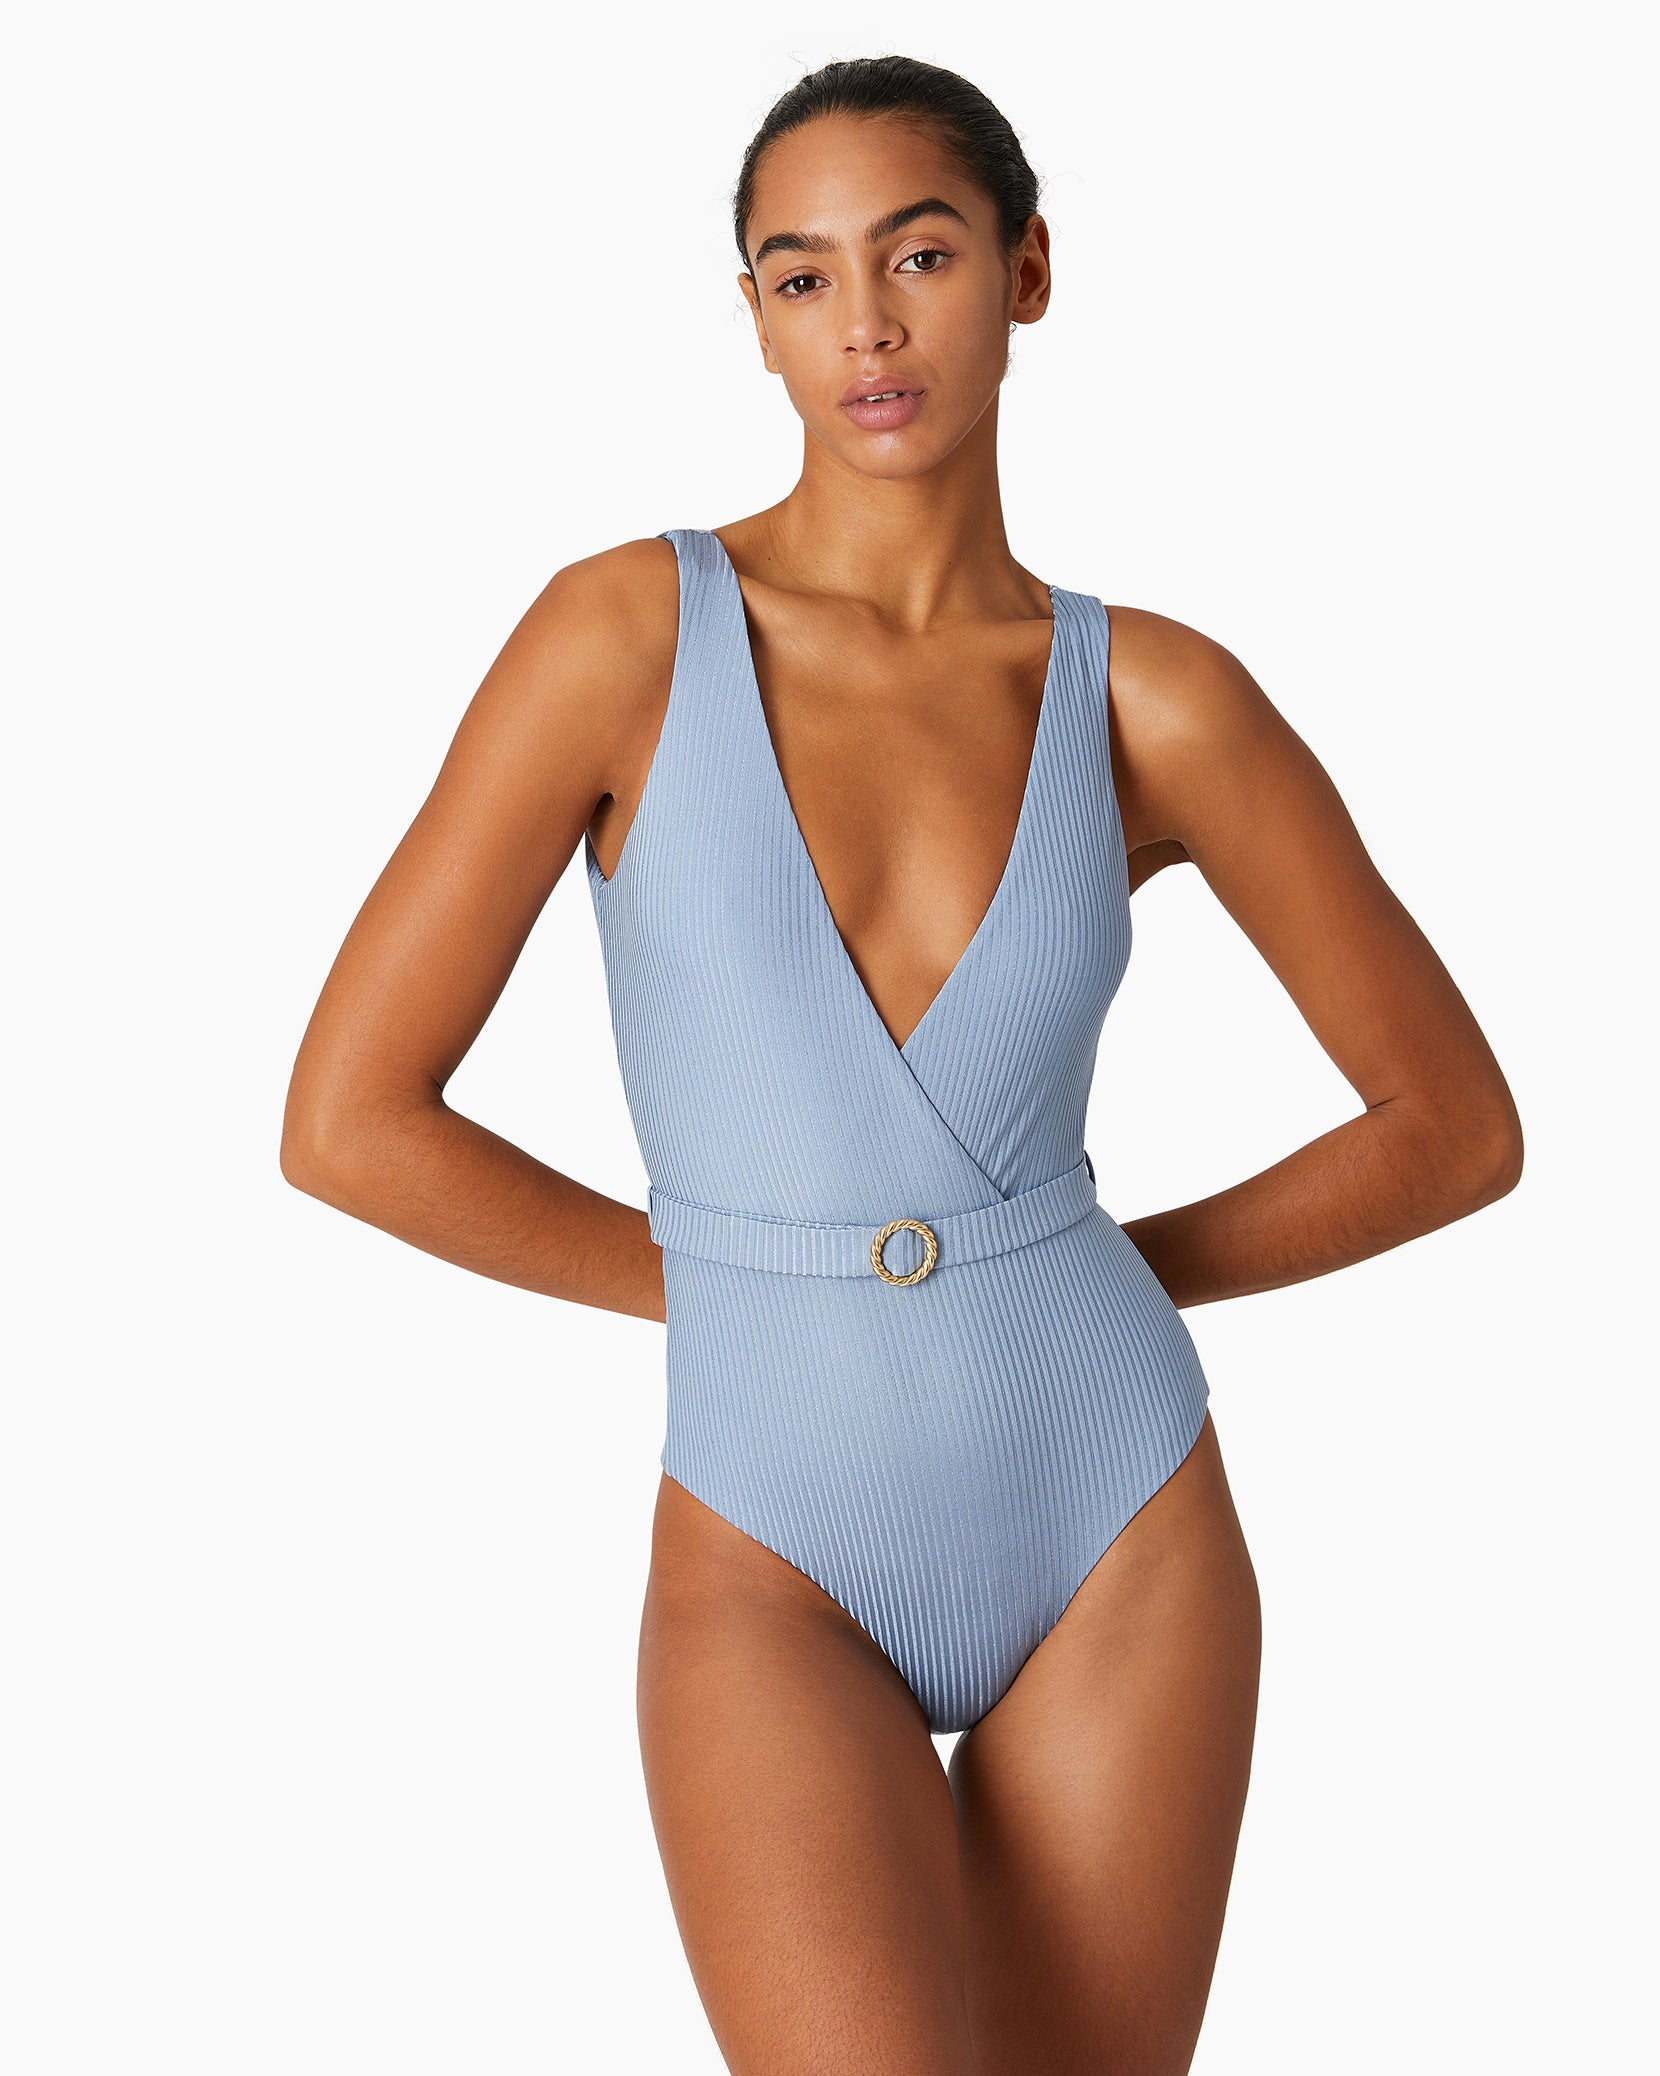 Shimmer Rib Michelle One Piece in Captain Blue - 2 - Onia